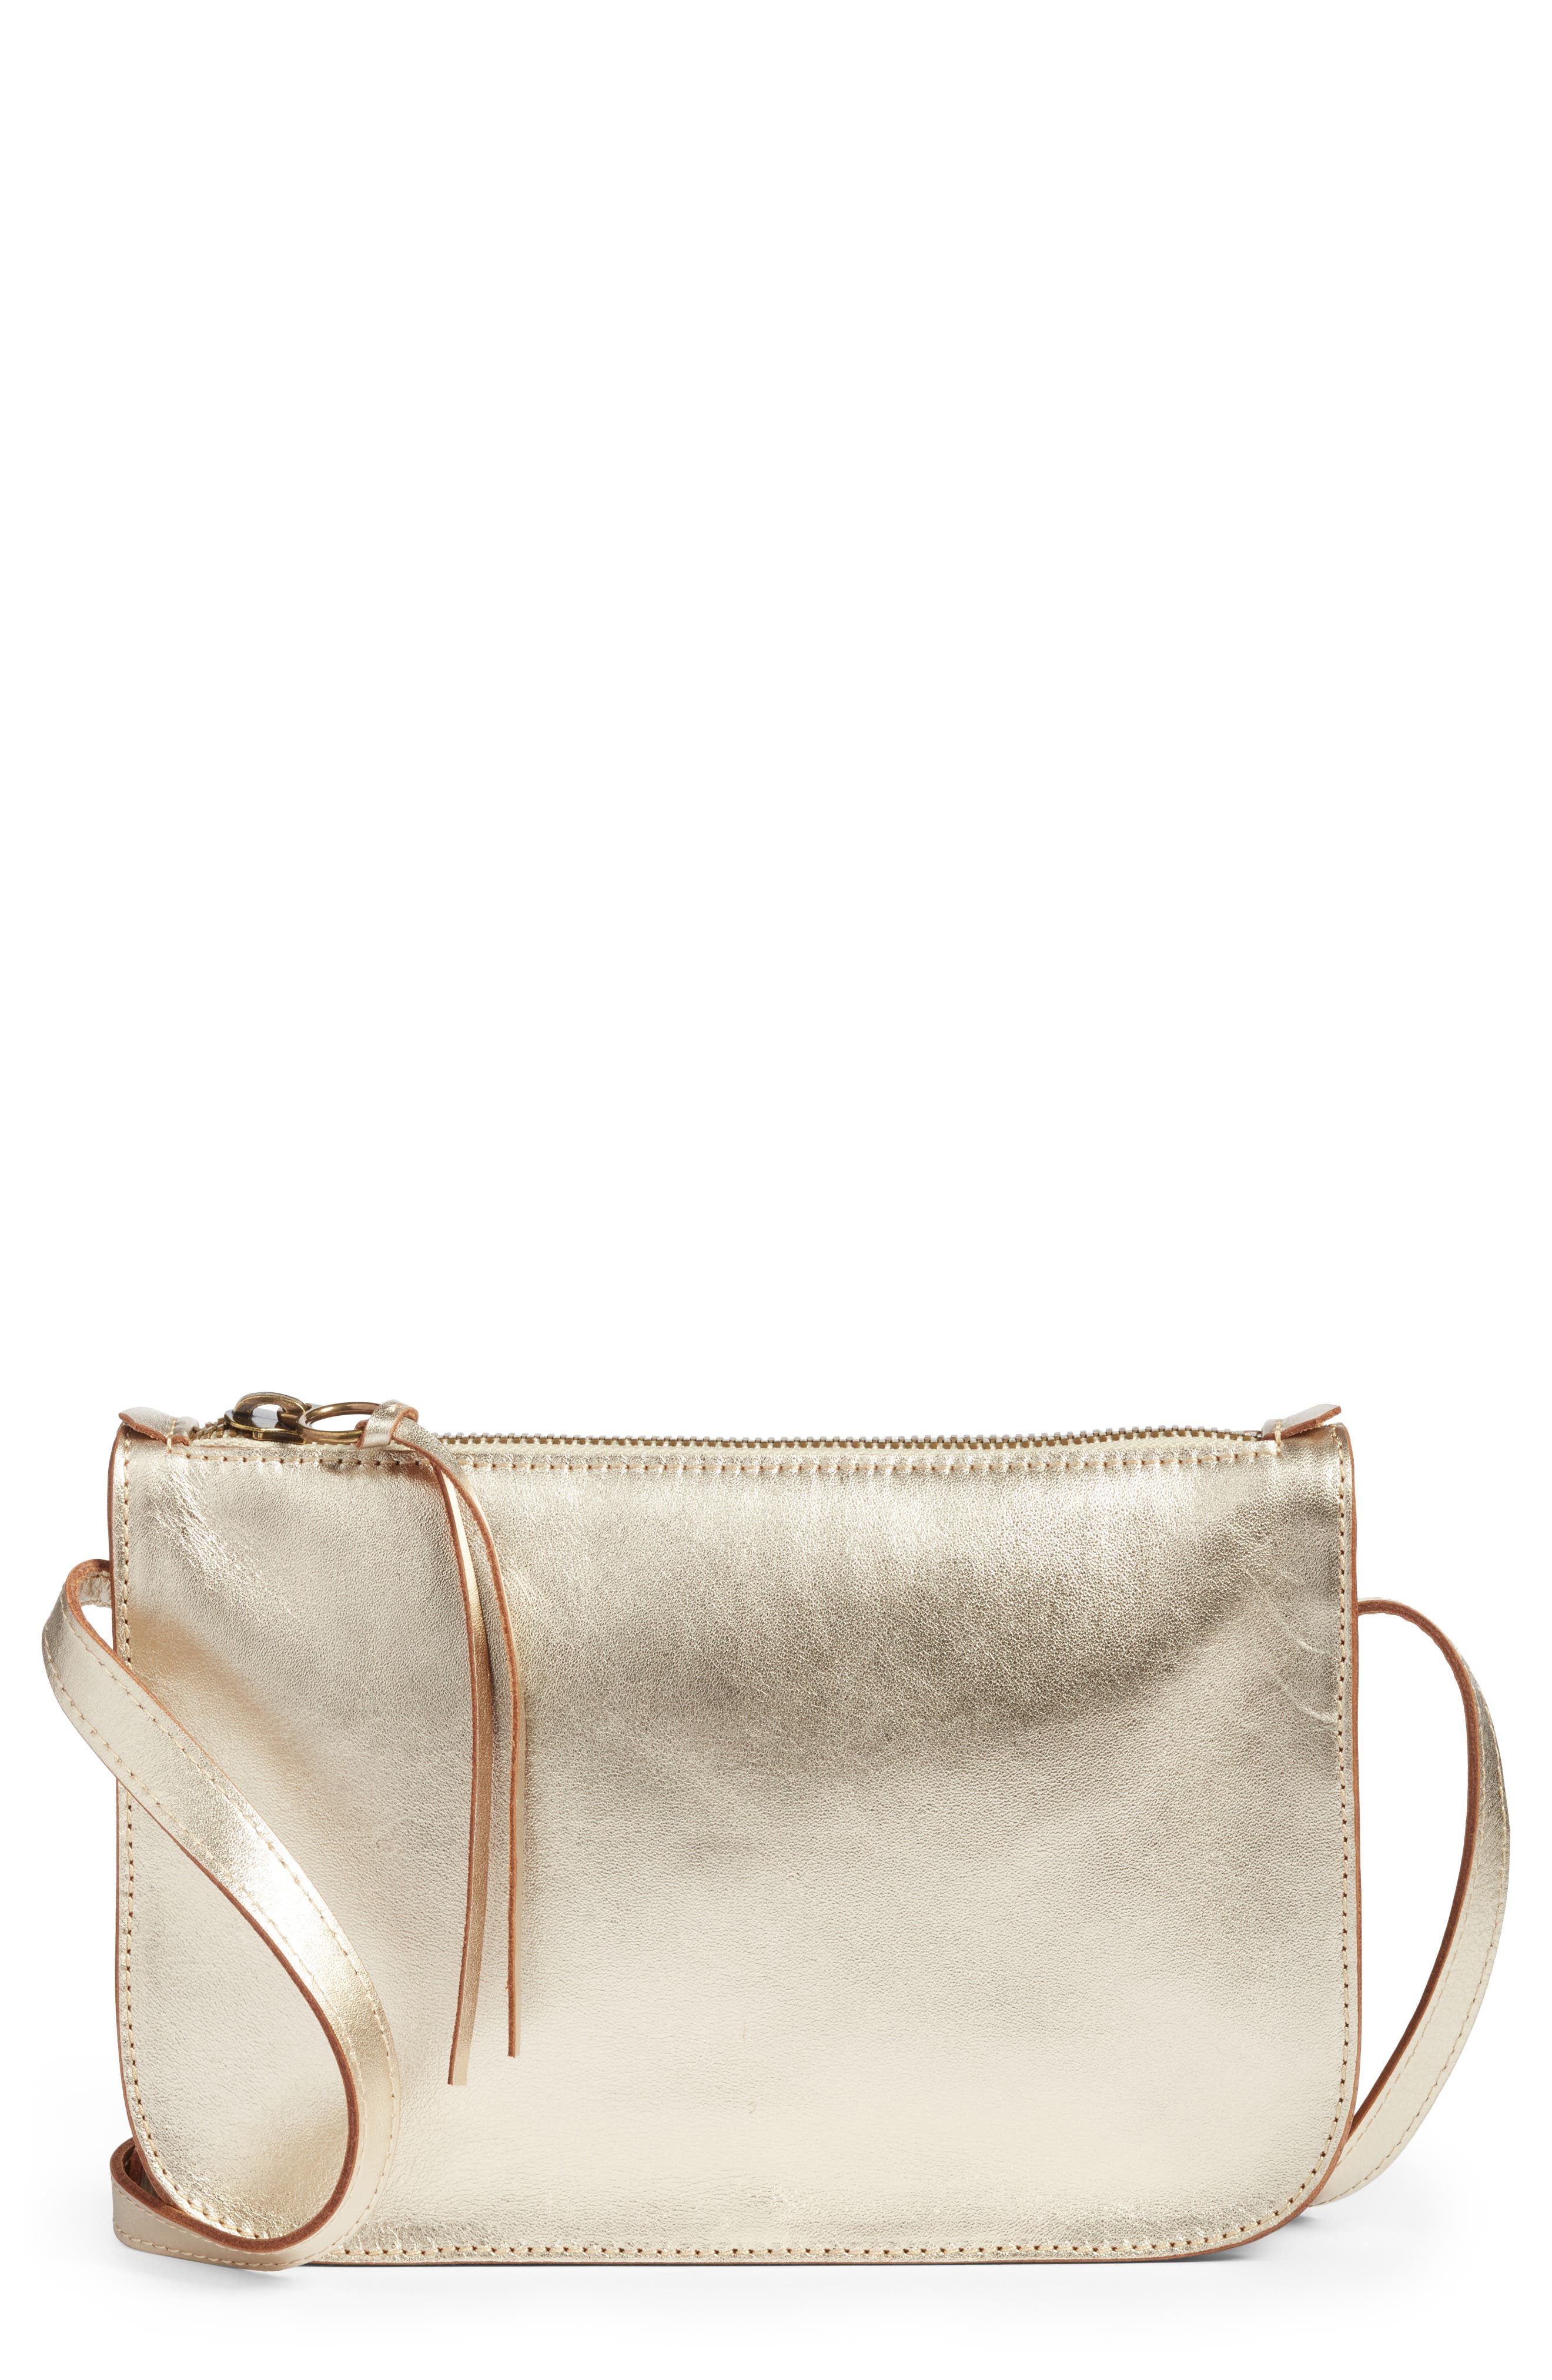 Leather Crossbody Bag,                         Main,                         color, 710